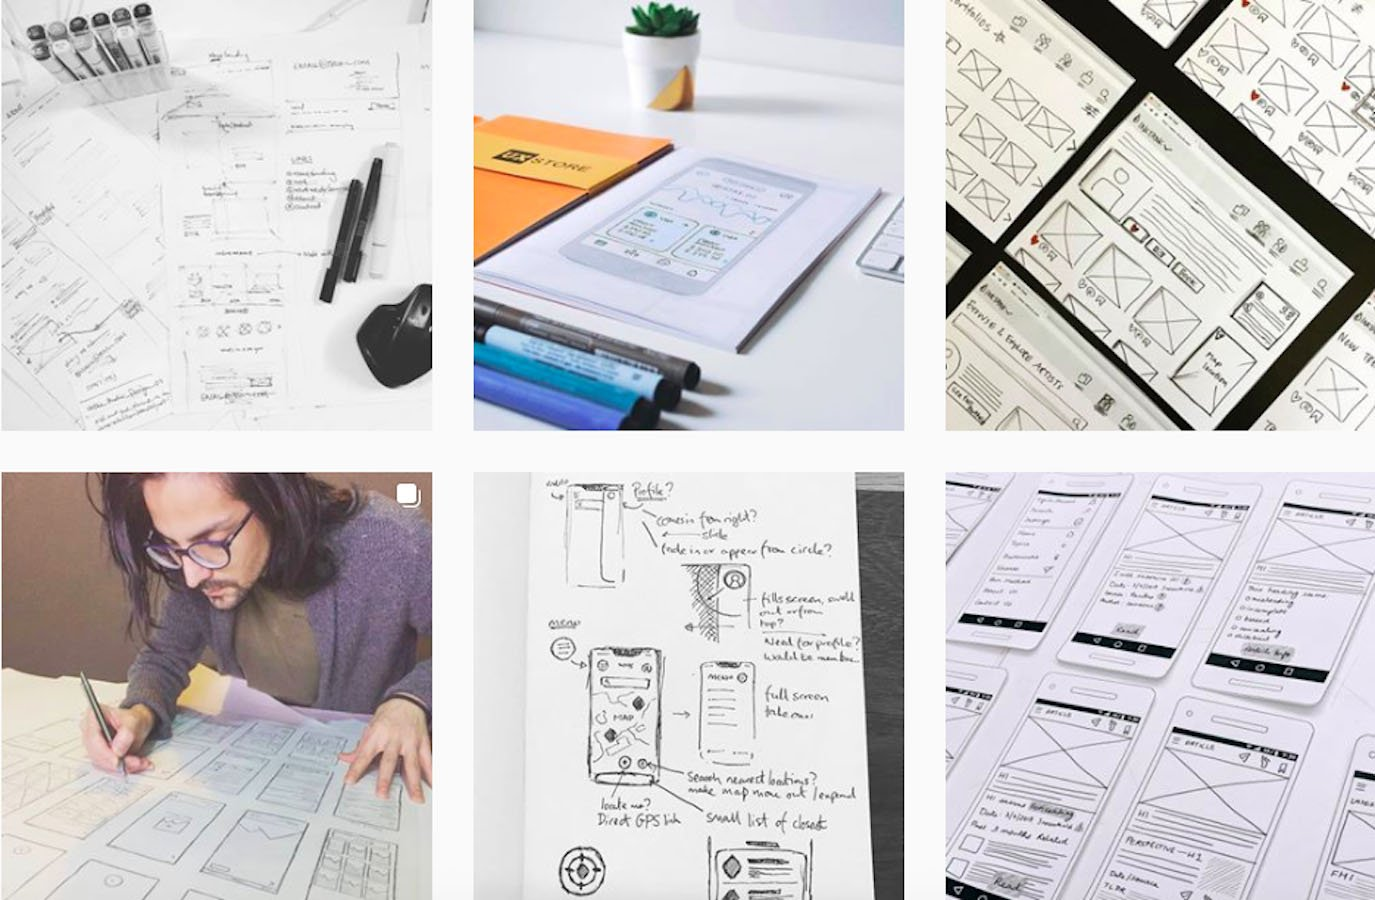 Web Design Inspiration: 110+ Accounts On Instagram and 10+ Best UX & Web Design Books in 2020 - wireflow